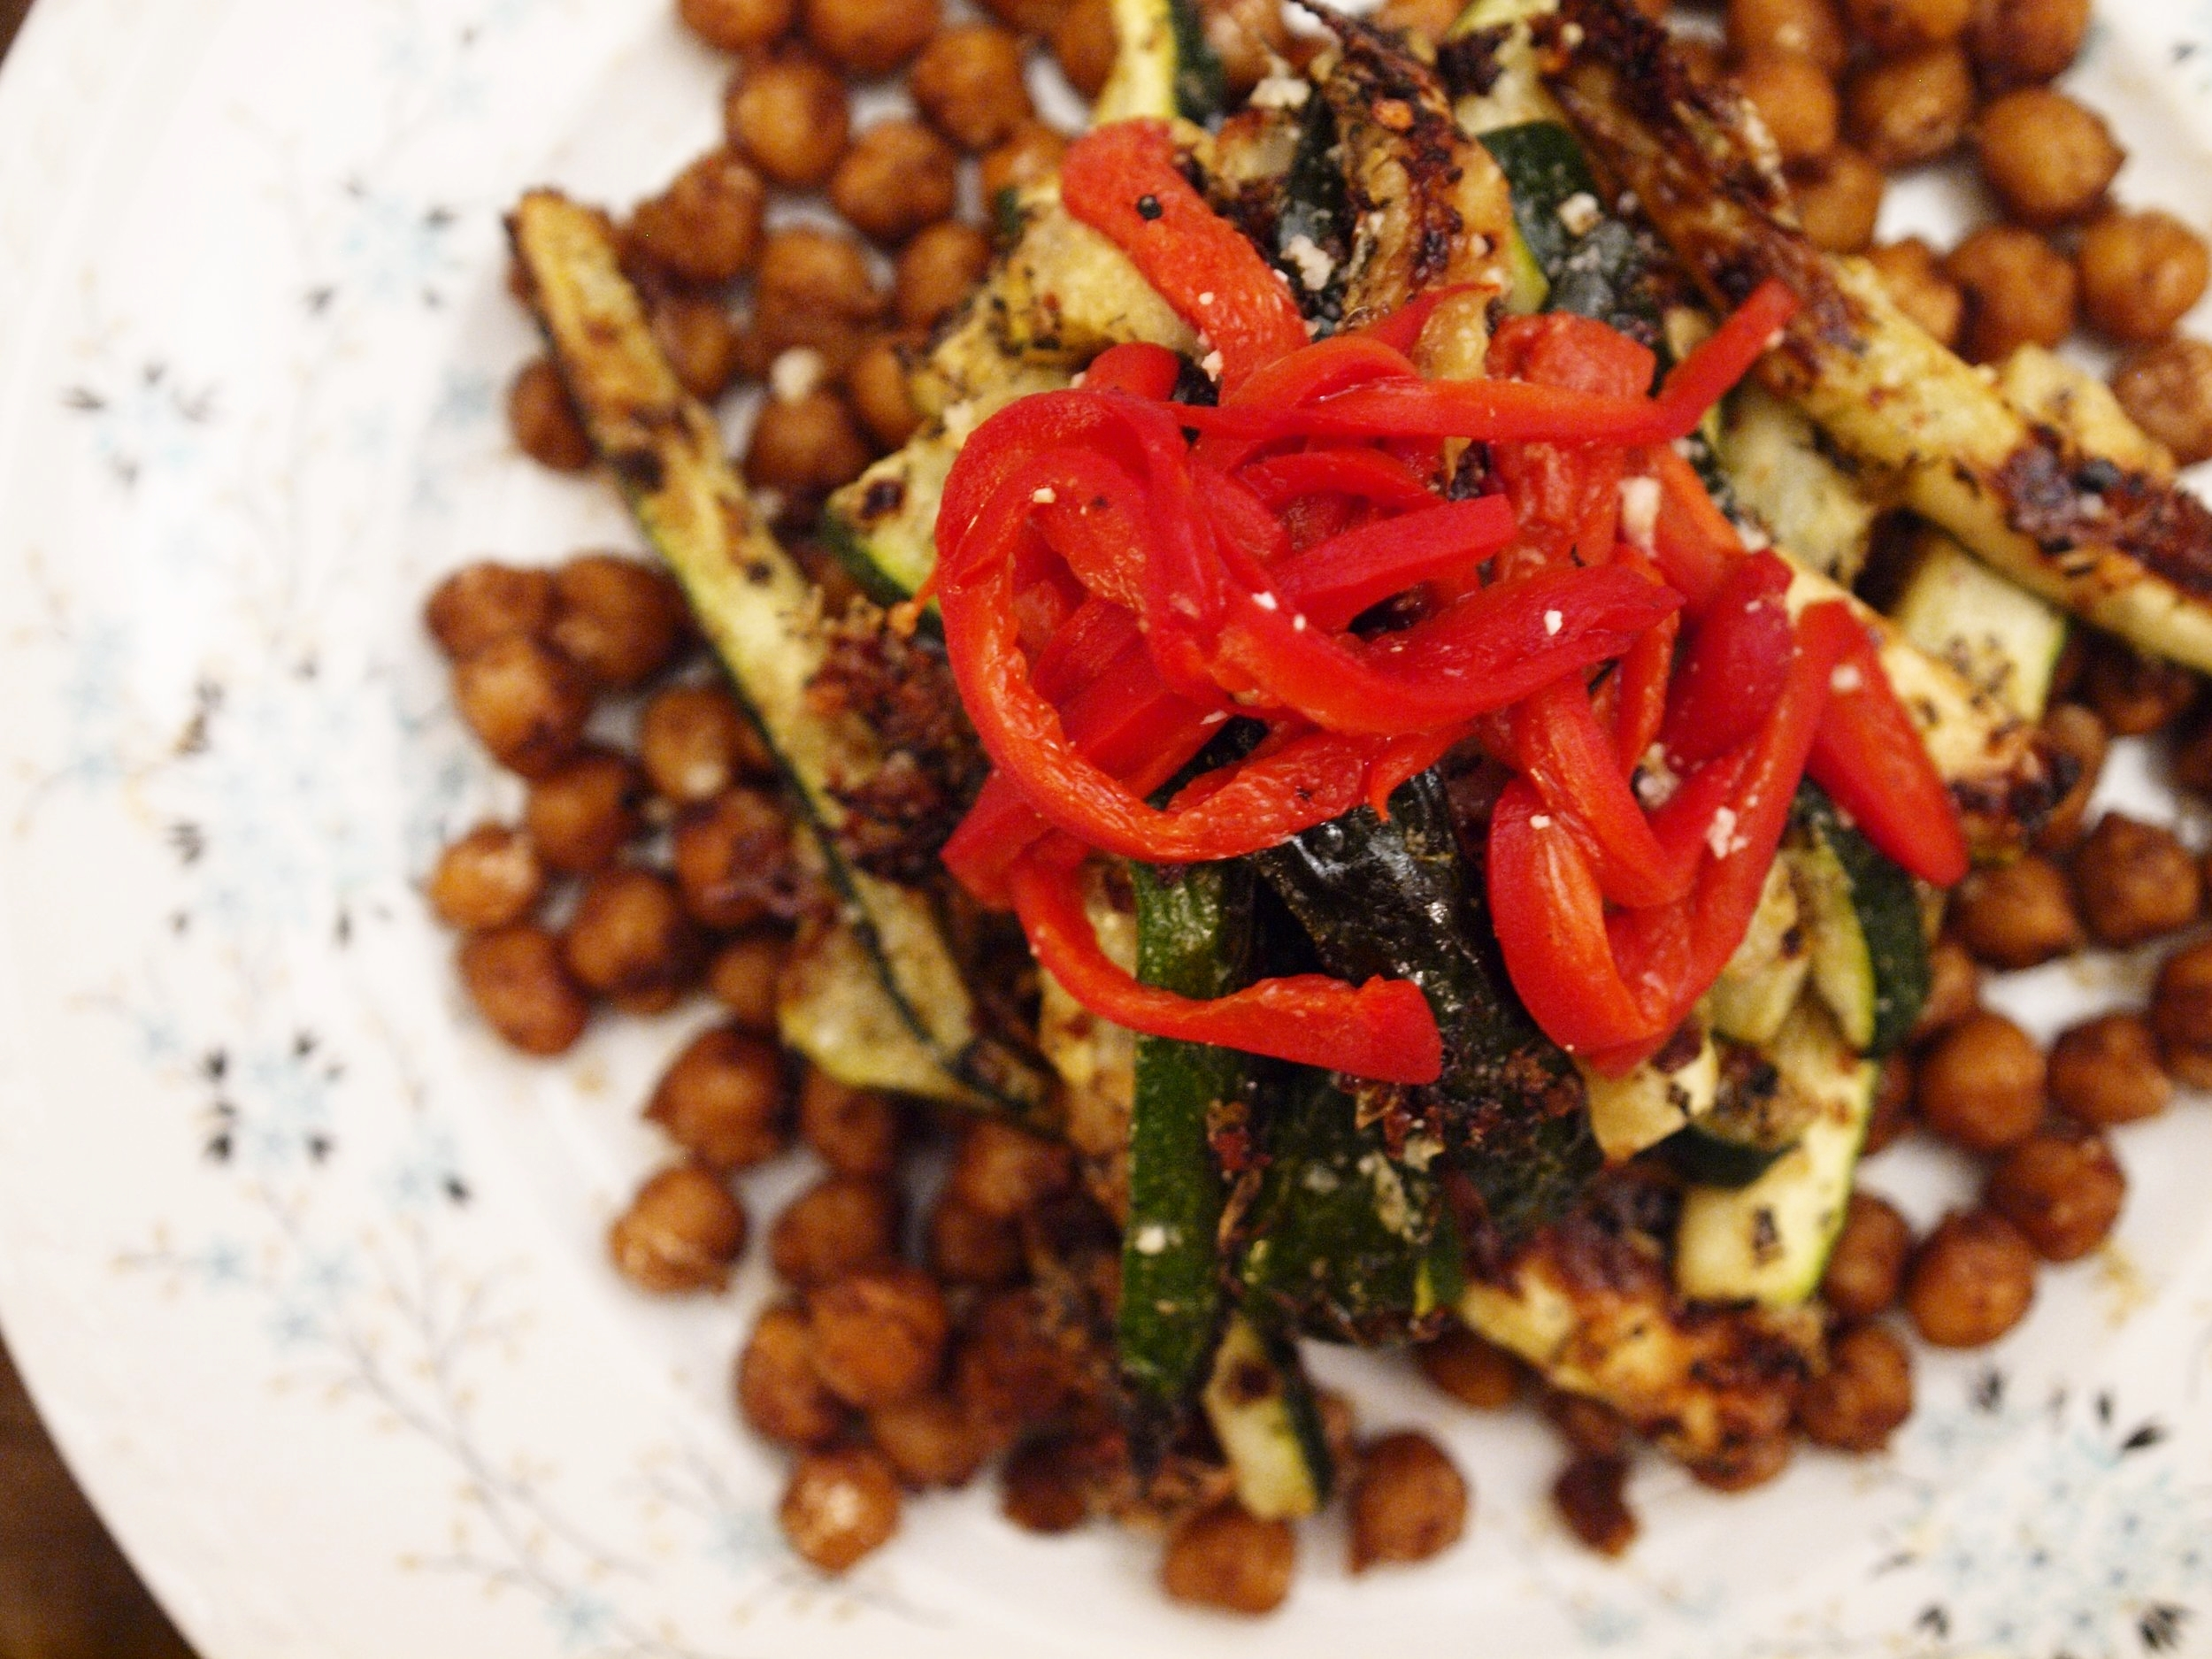 crisp chickpea salad with marinated red pepper and zucchini